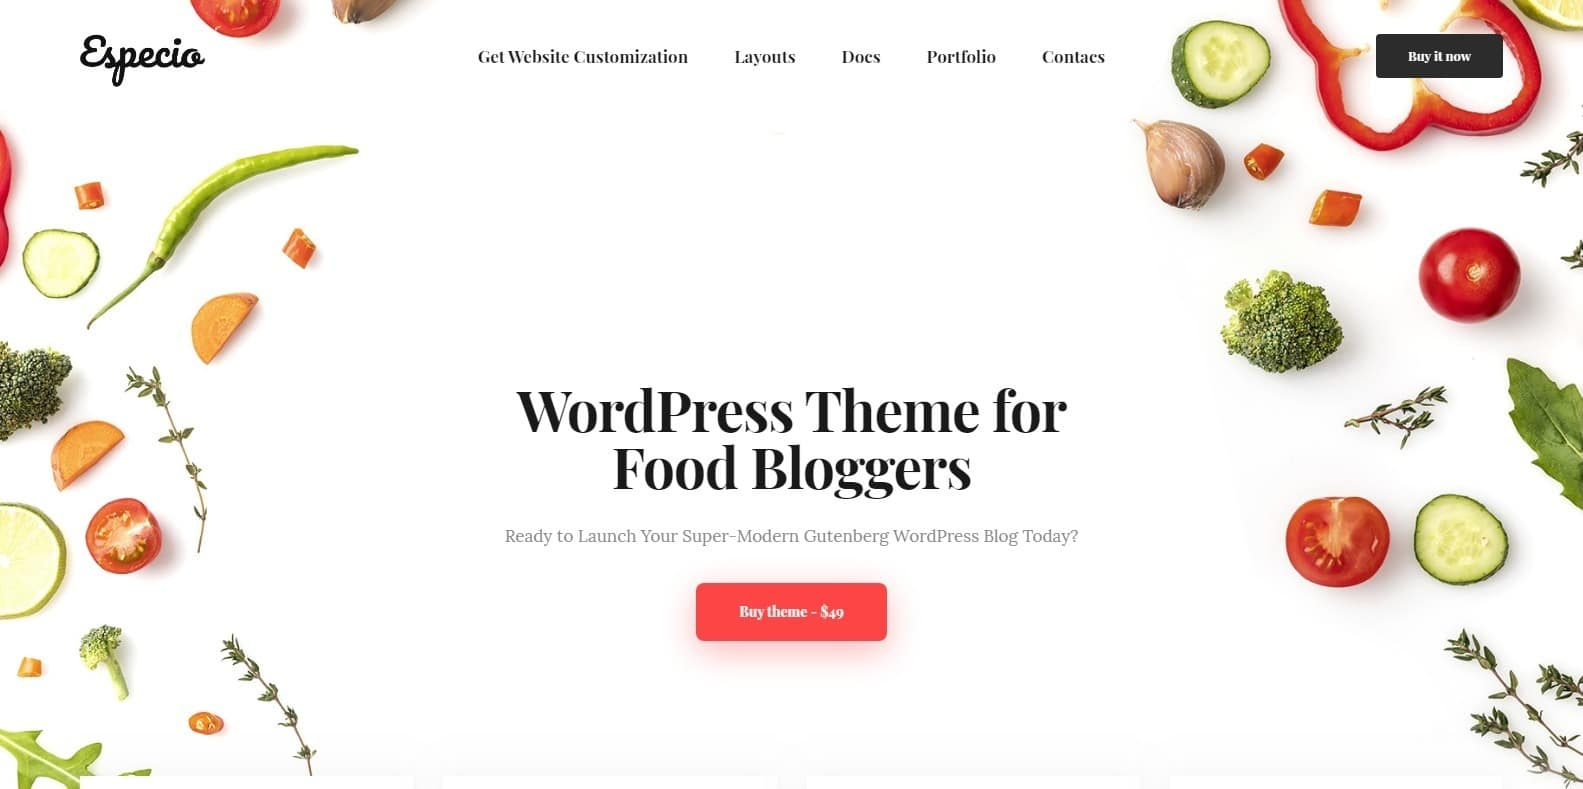 especio-food-blog-website-template-html